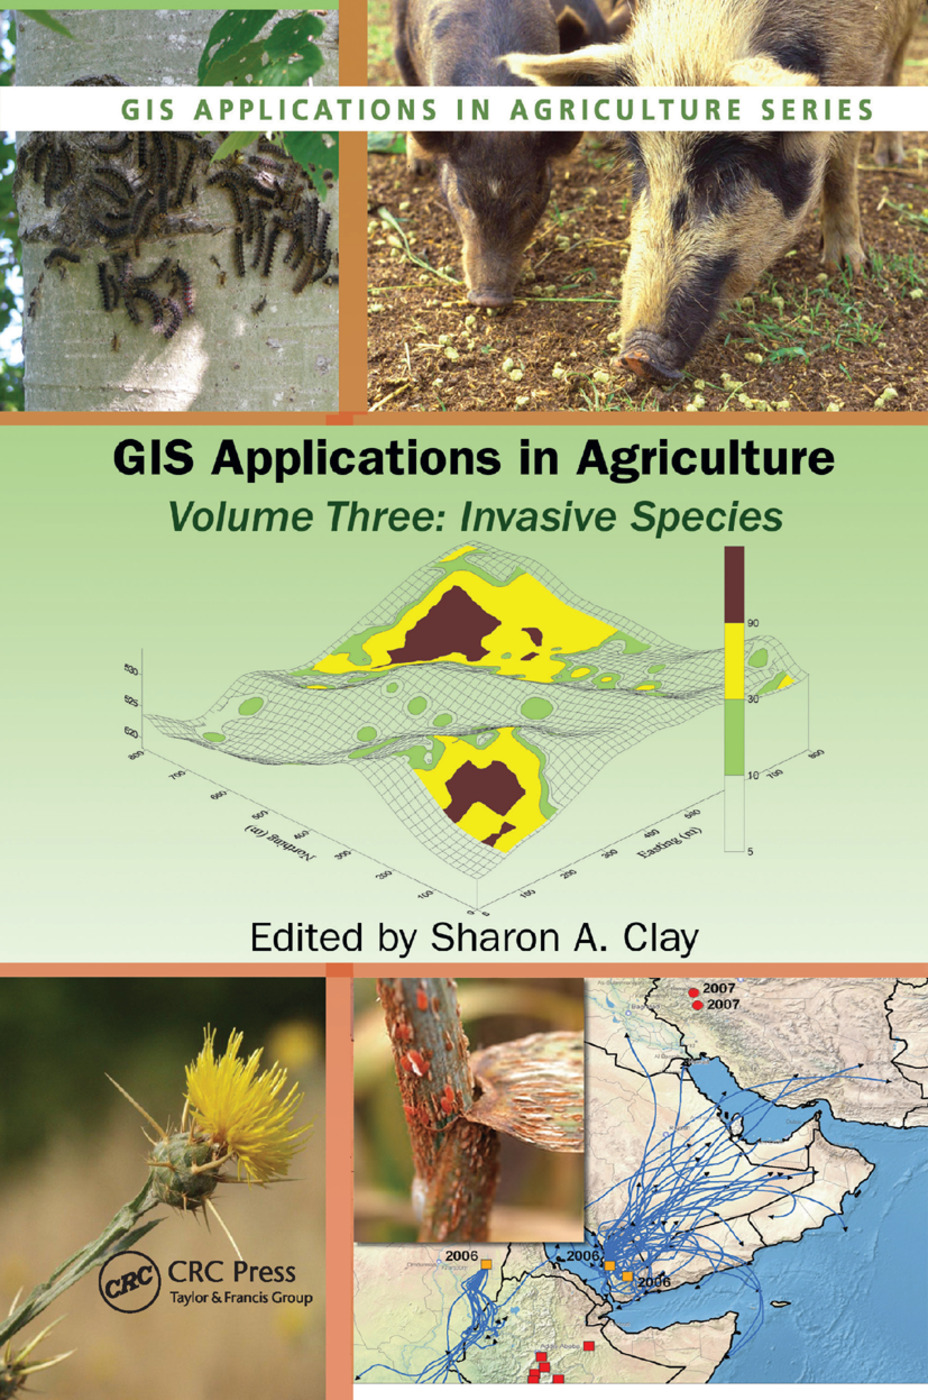 GIS Applications in Agriculture, Volume Three